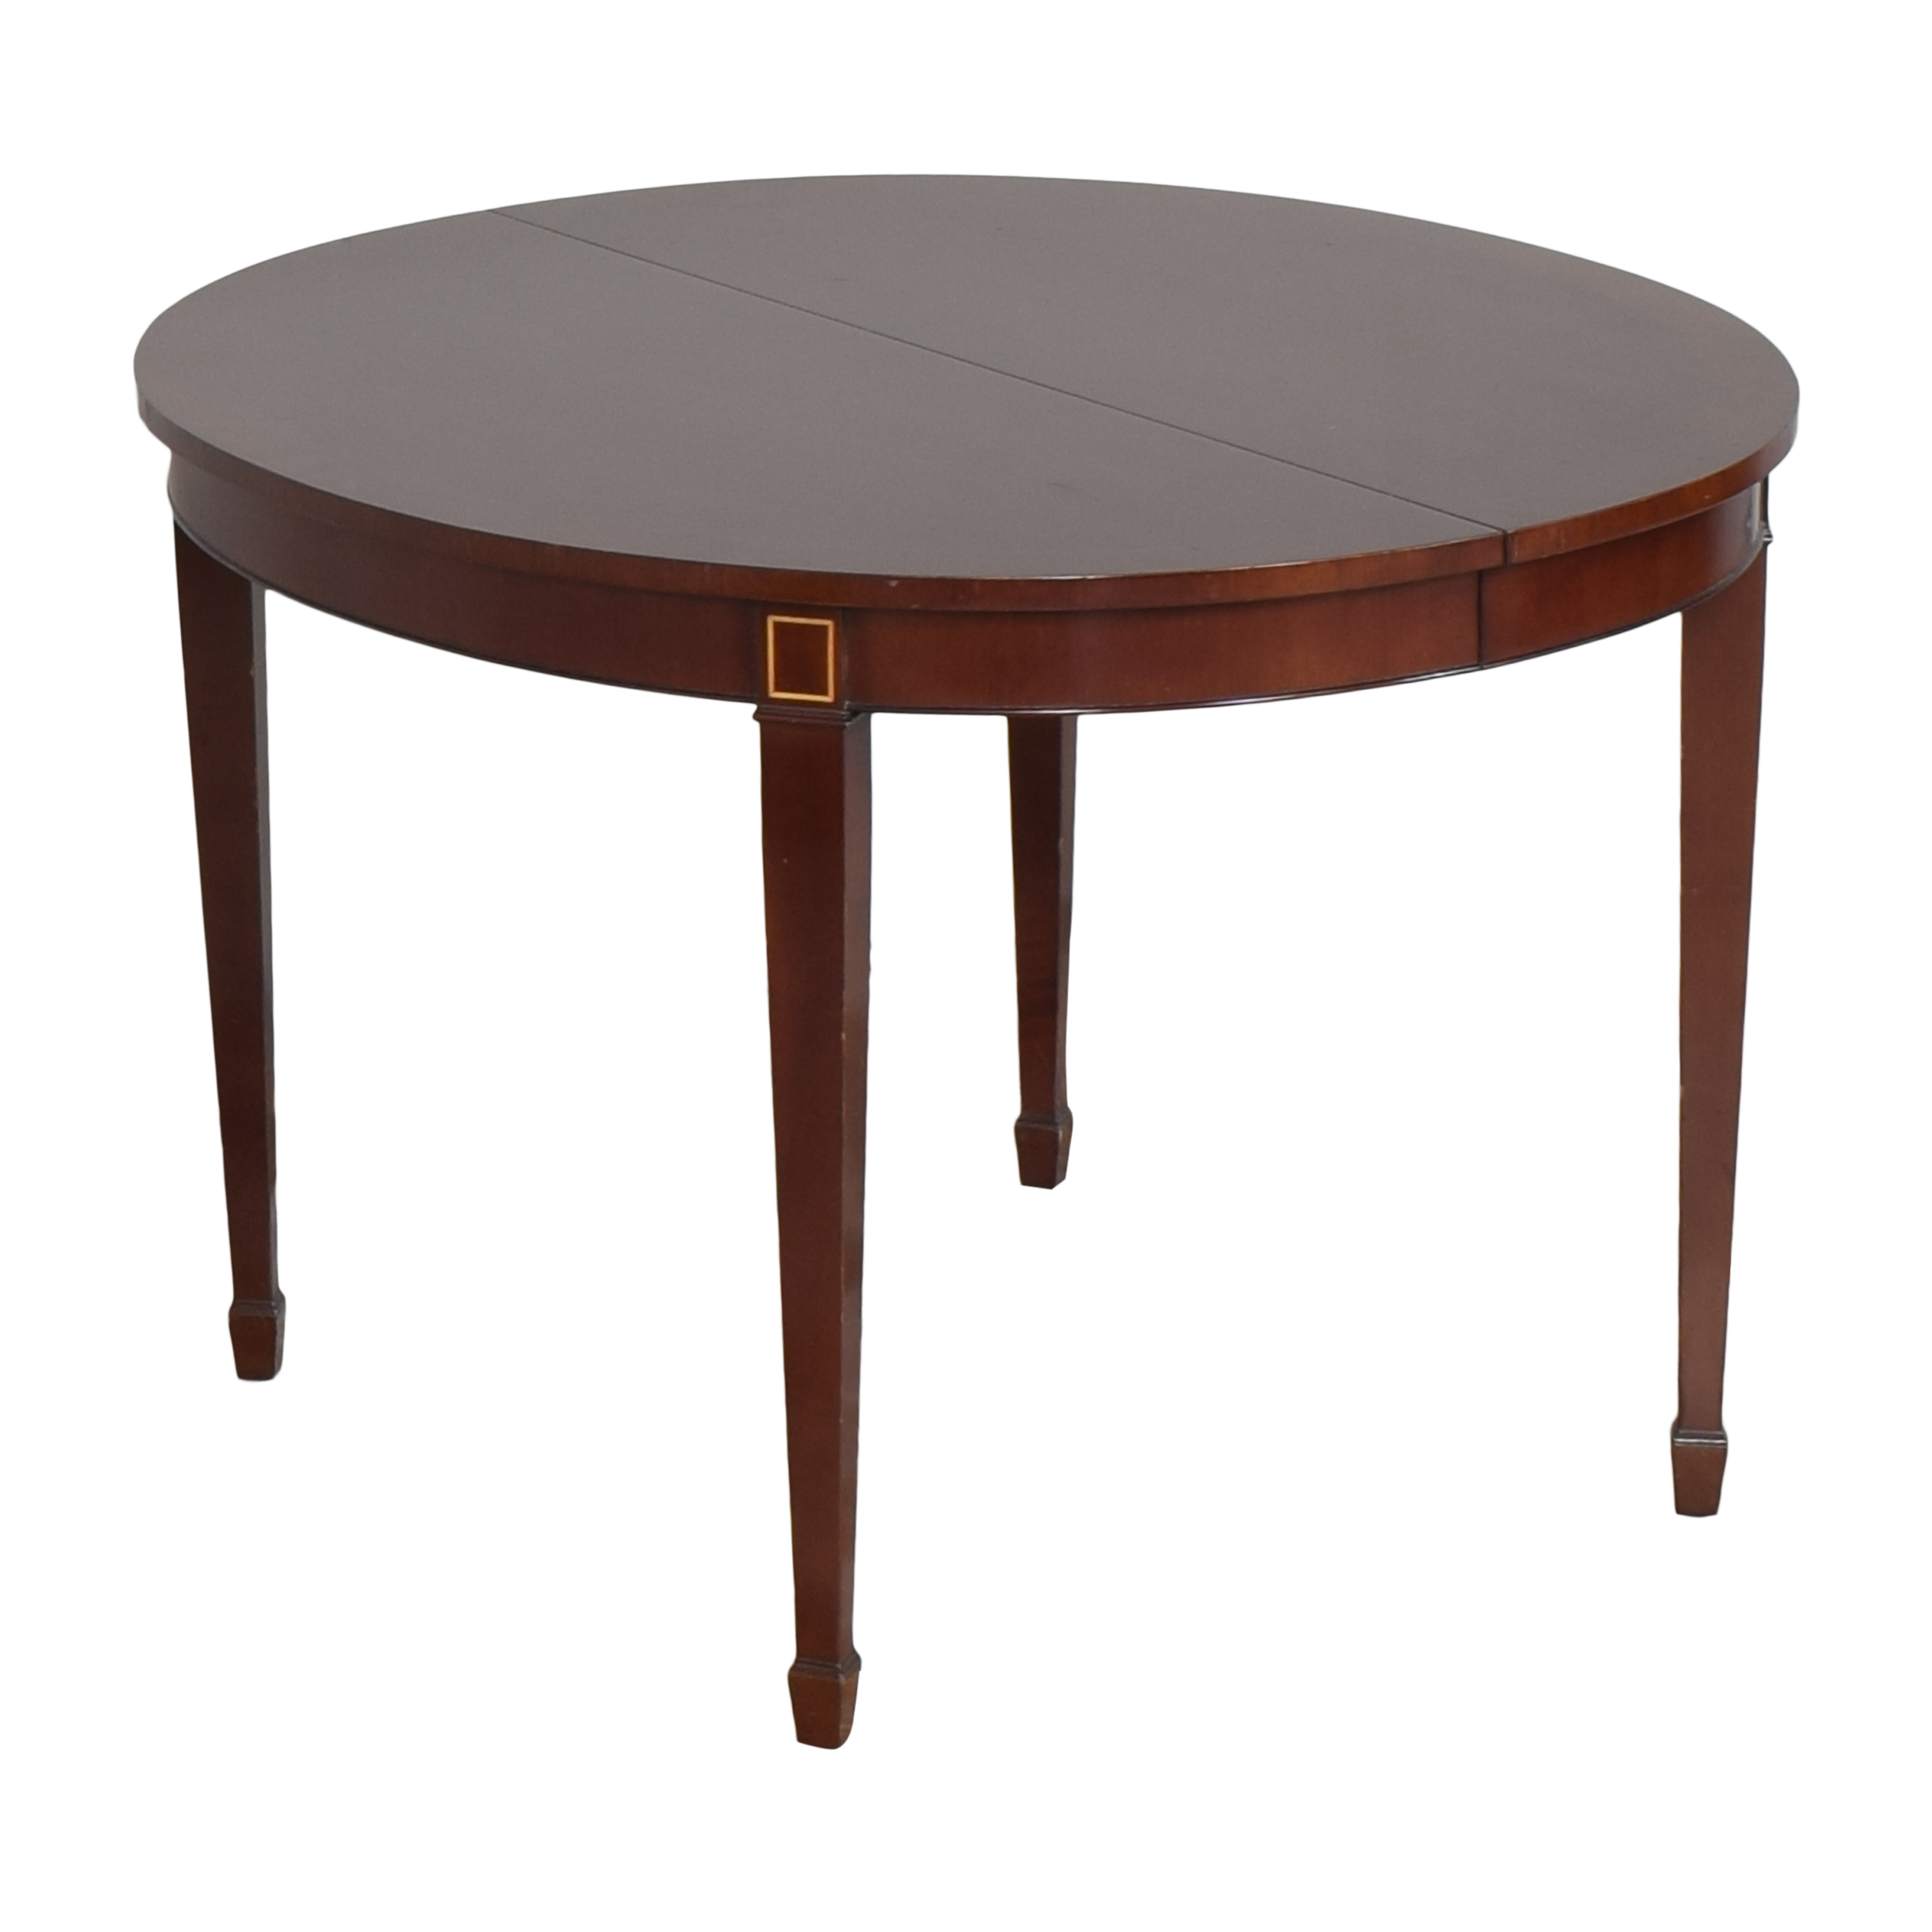 Kindel Kindel Round Extendable Dining Table discount